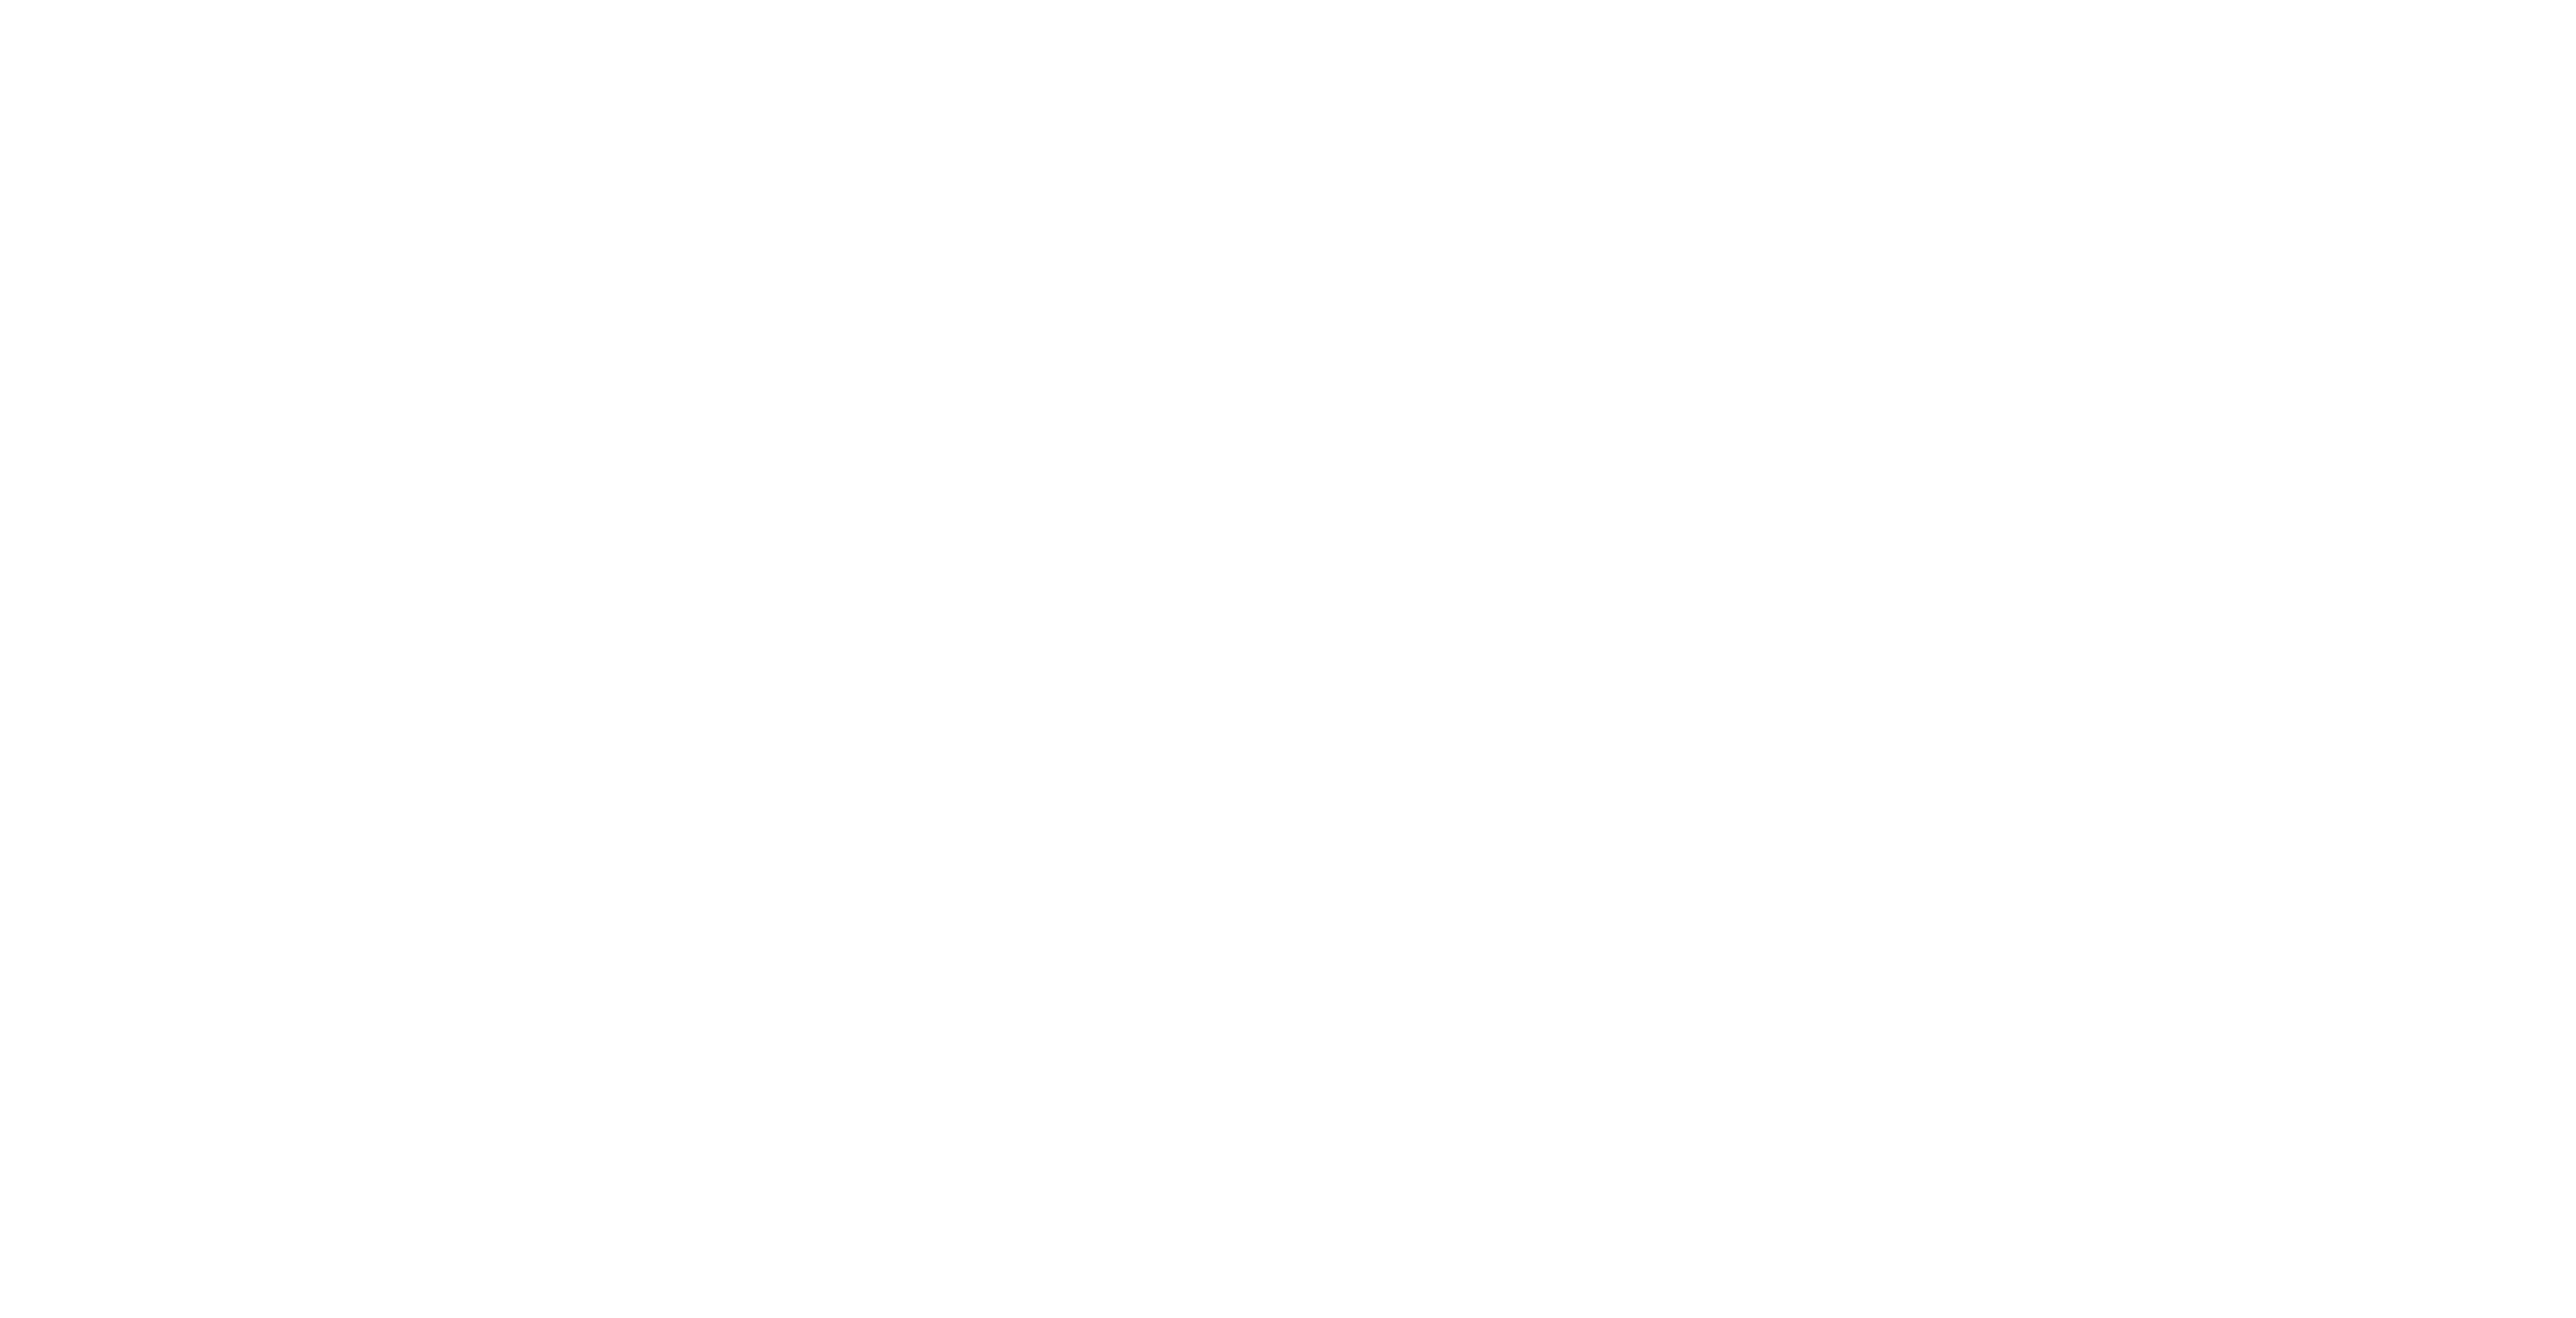 June 2019 Possessions. 75% Sold.